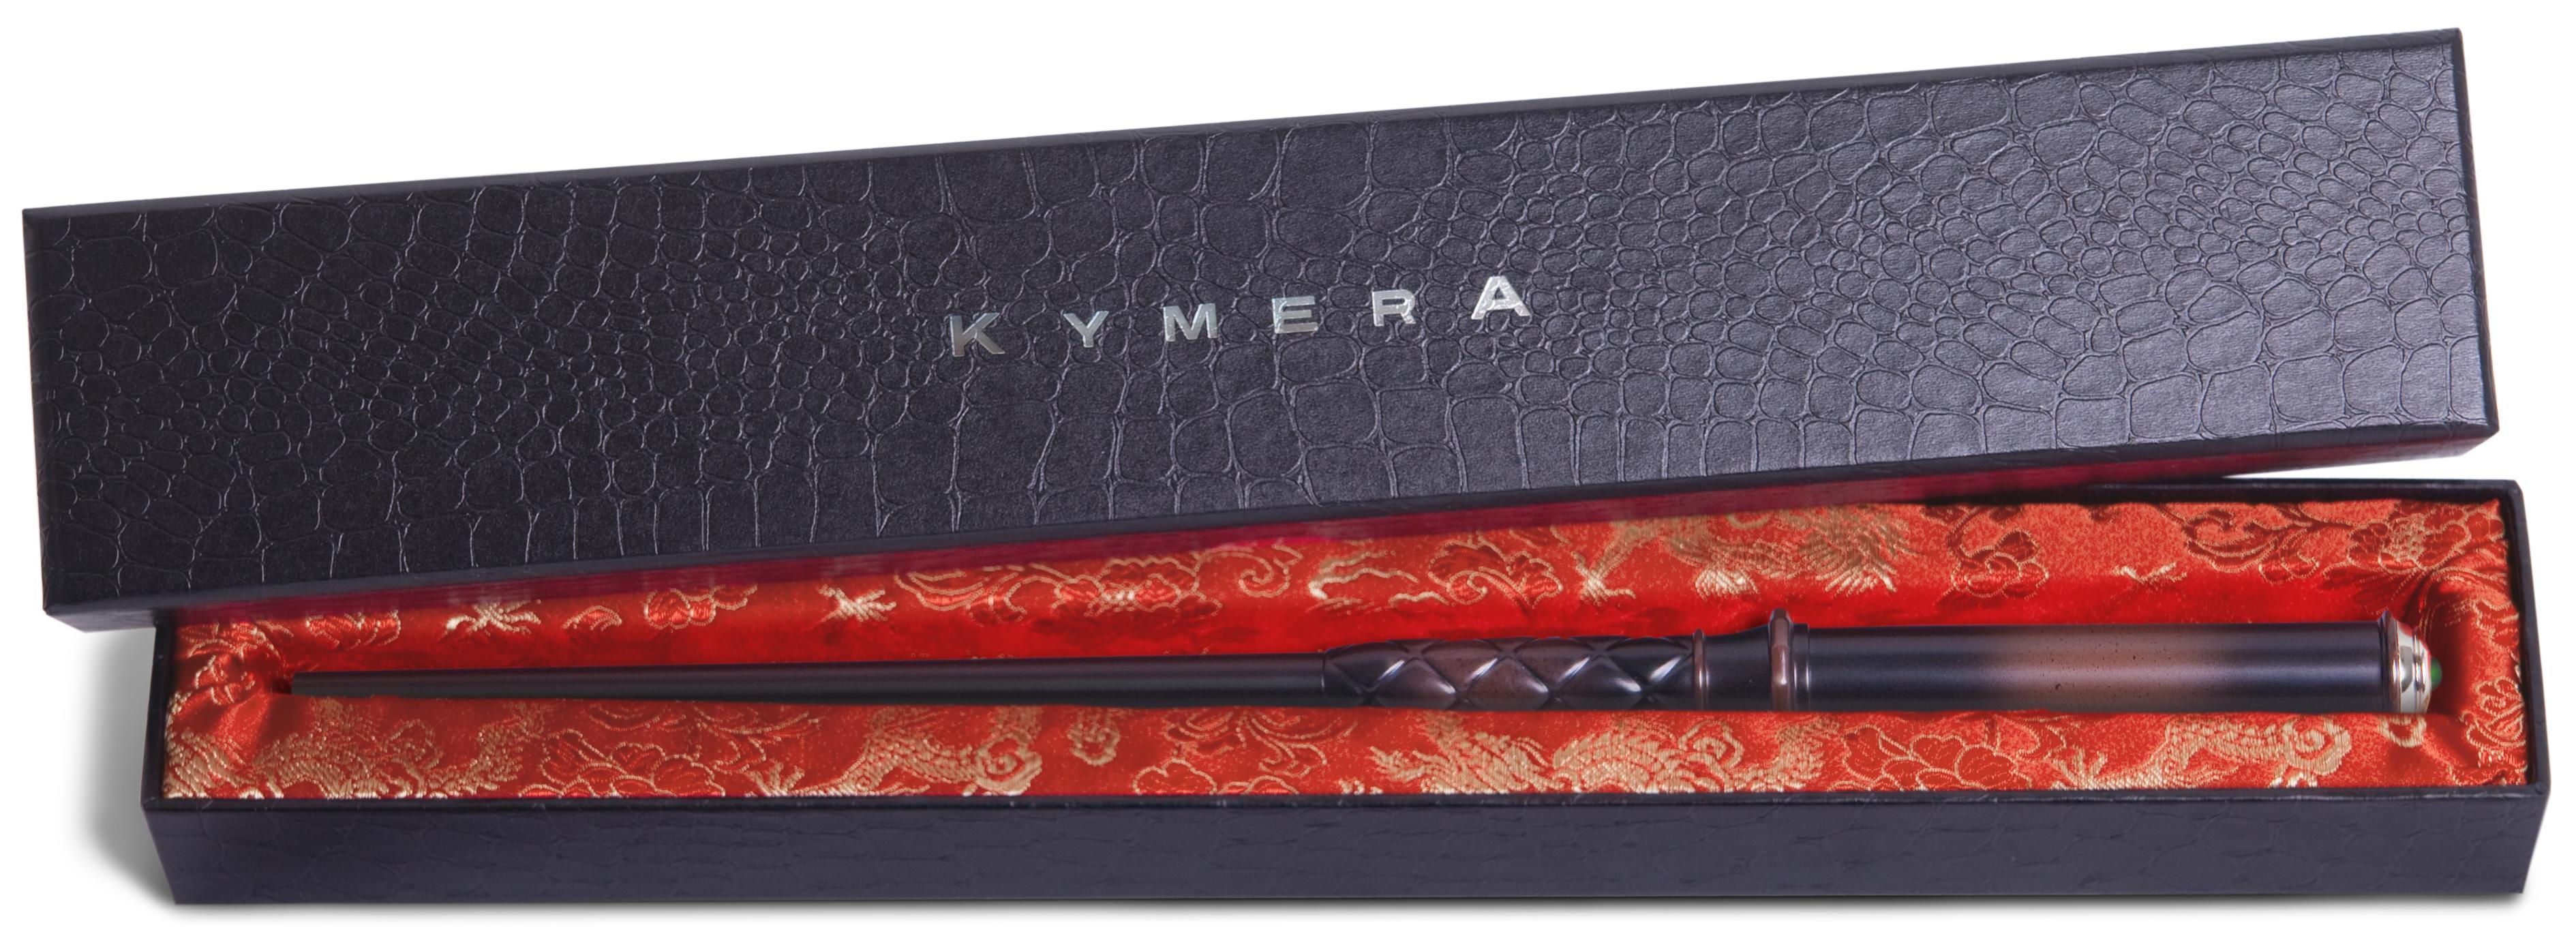 kymera magic wand remote control review